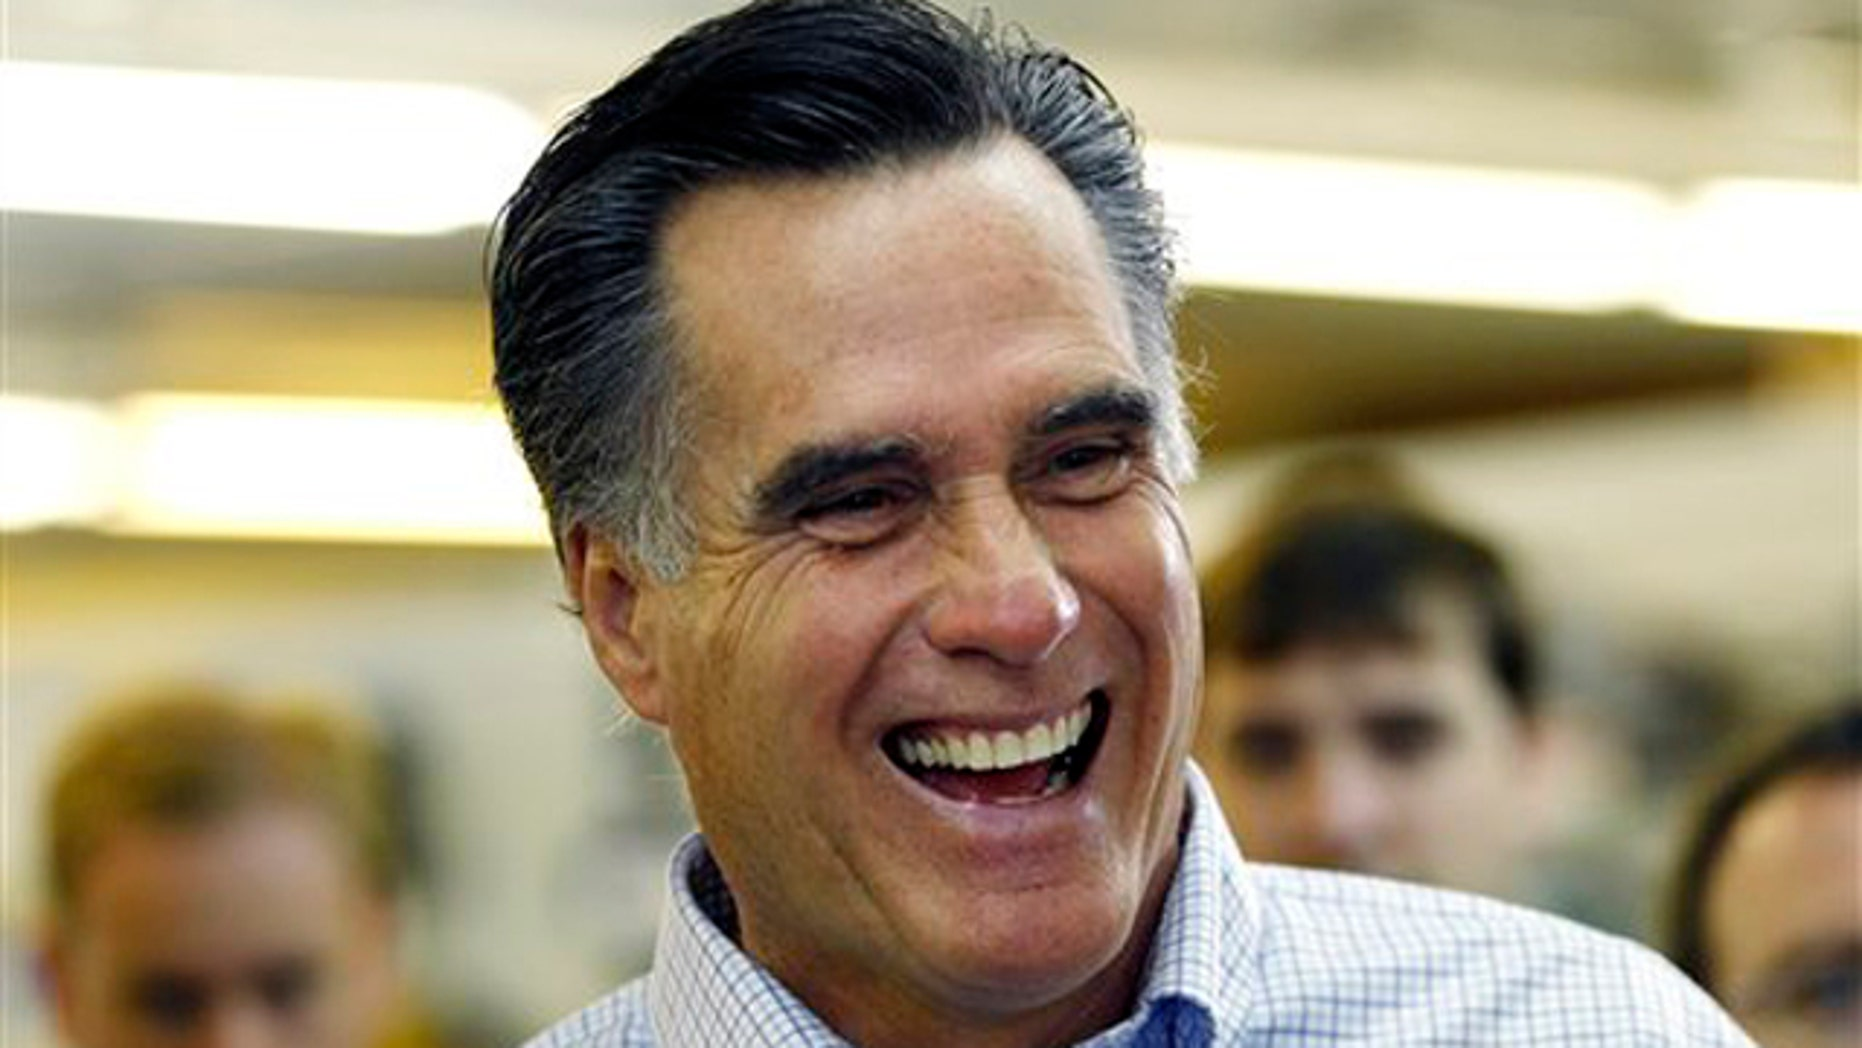 Former Massachusetts Gov. Mitt Romney laughs during a campaign stop at a hardware store in Derry, N.H., June 14.